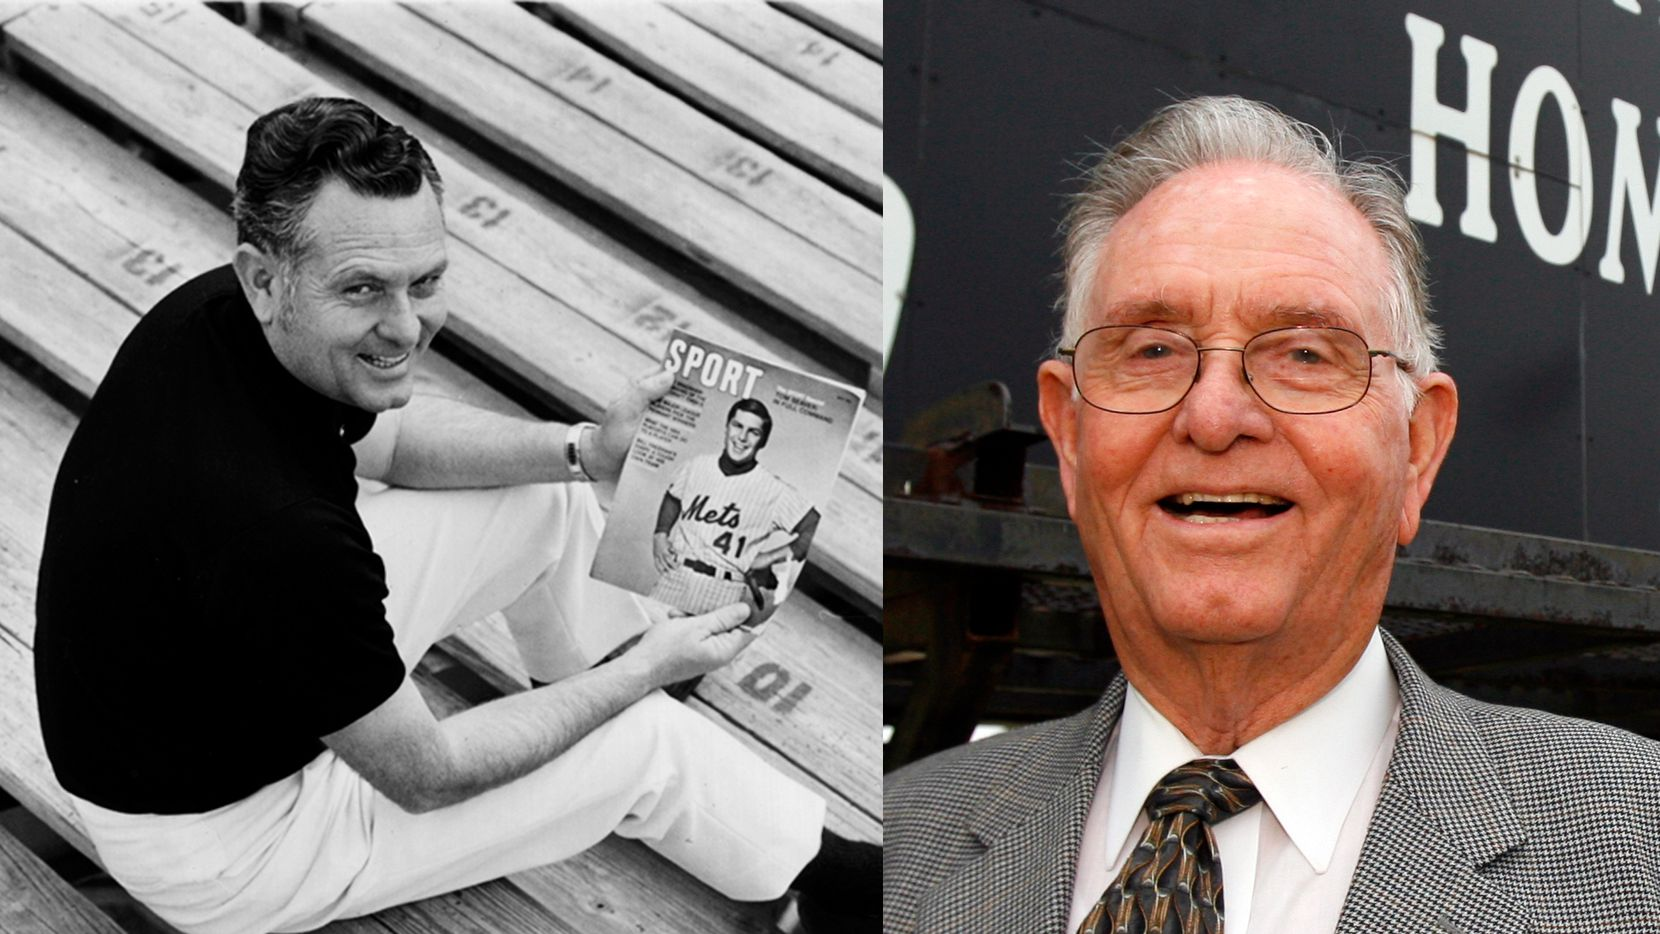 An undated file photo of Homer B. Johnson (left) and a photo of him in 2007.